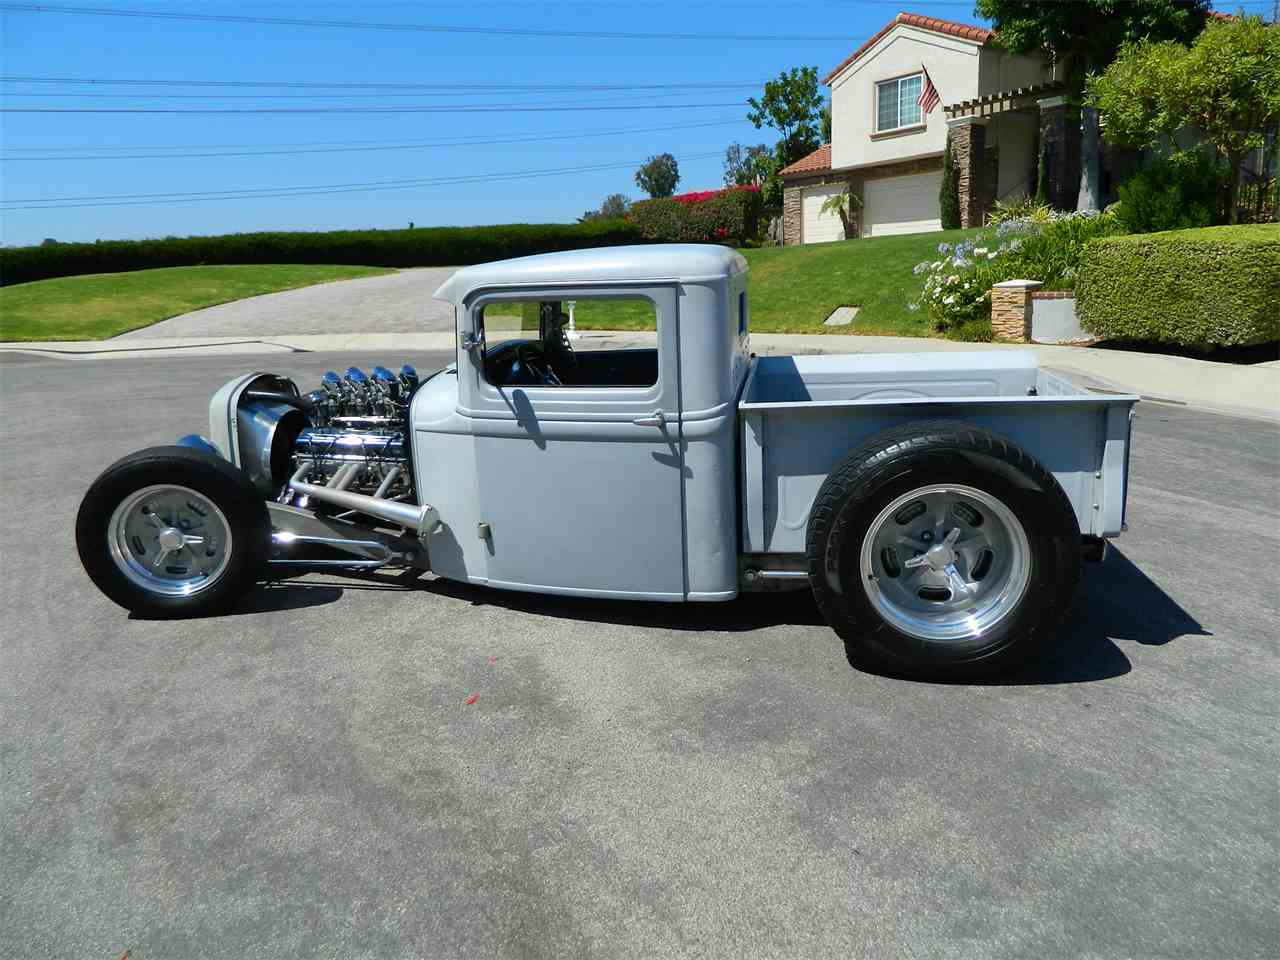 1932 Ford Pickup for Sale   ClassicCars.com   CC-888179